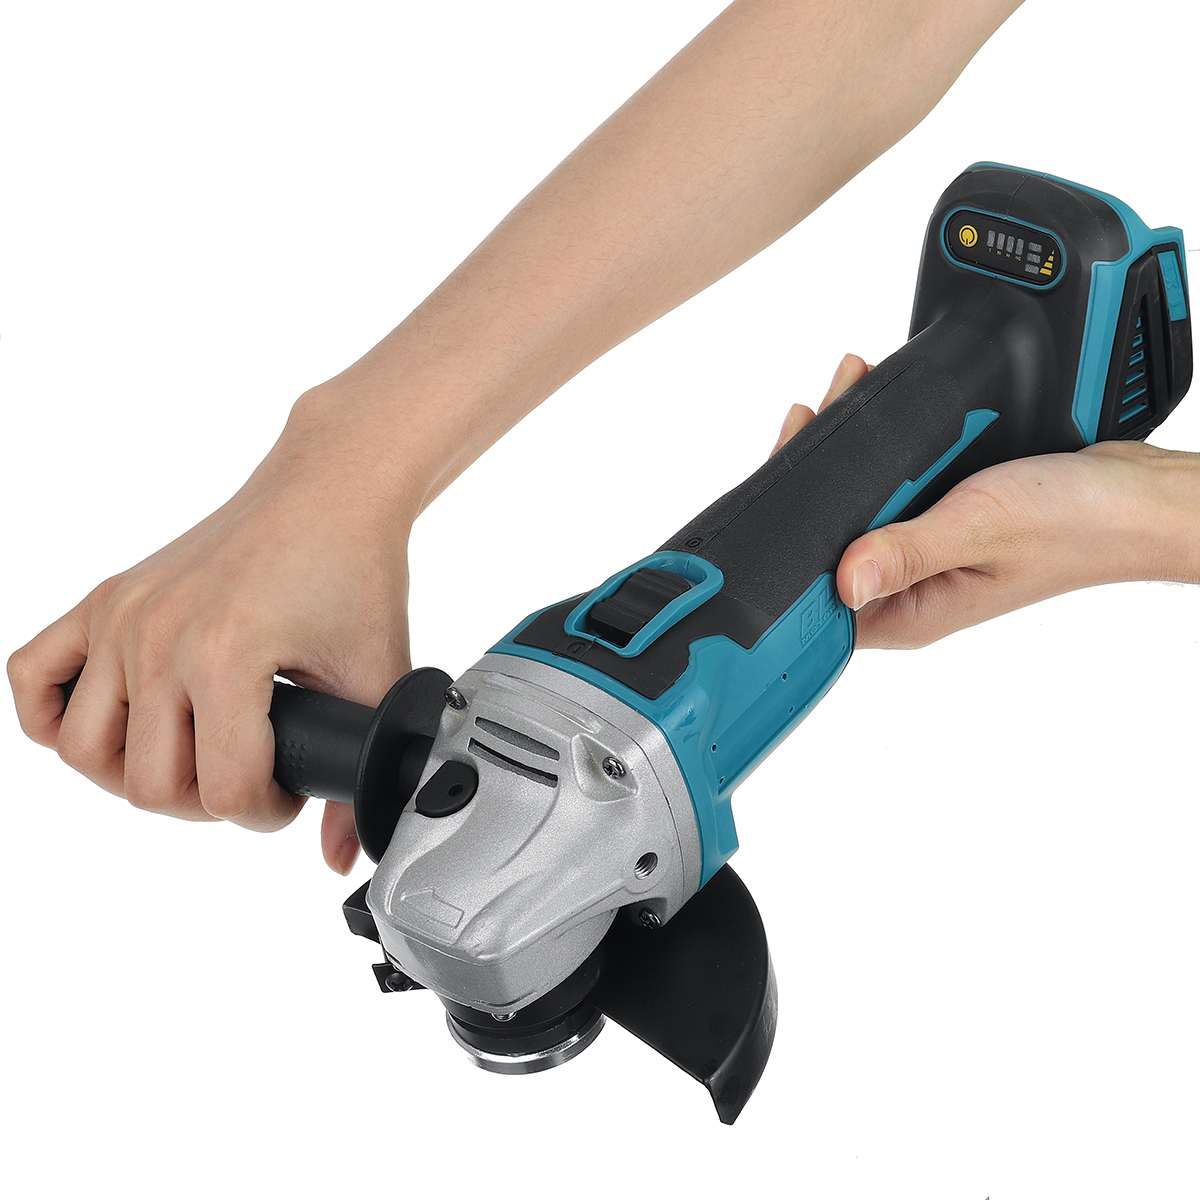 800W 125mm Brushless Cordless Impact Angle Grinder Electric DIY Power Tool Cutting Machine Polisher for 18V Makita Battery